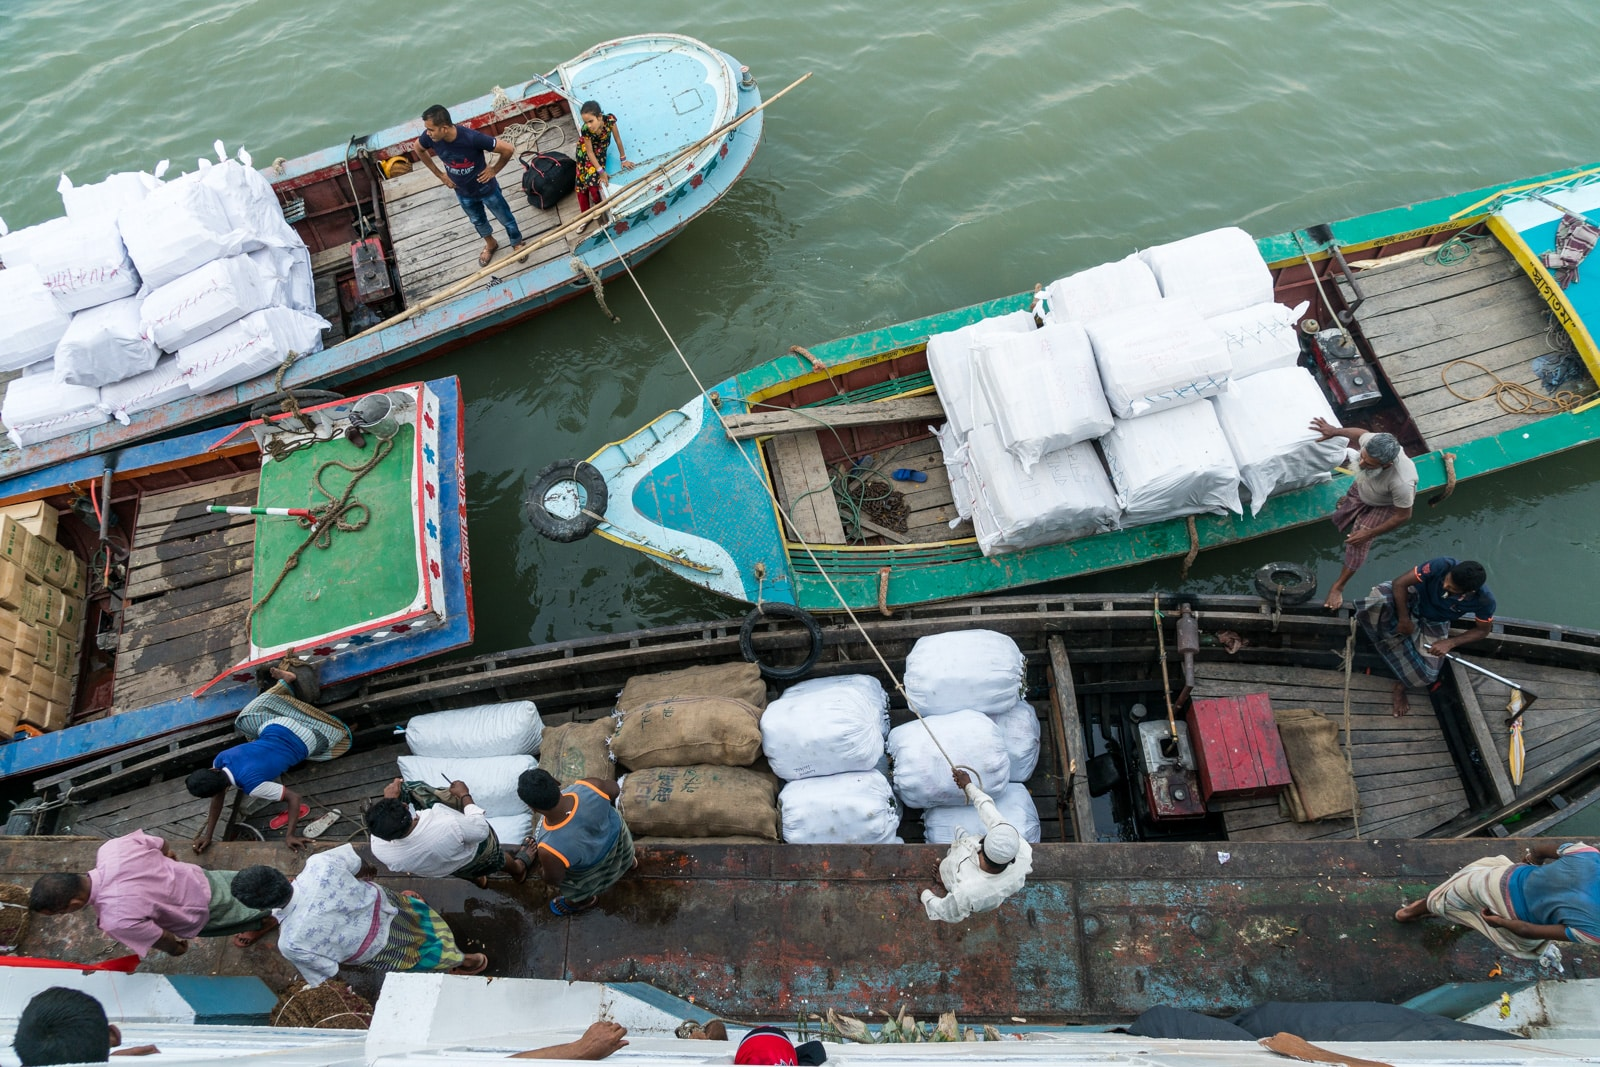 How to get a launch boat from Khulna to Dhaka via Hularhat - People loading cargo onto the launch in Bangladesh - Lost With Purpose travel blog